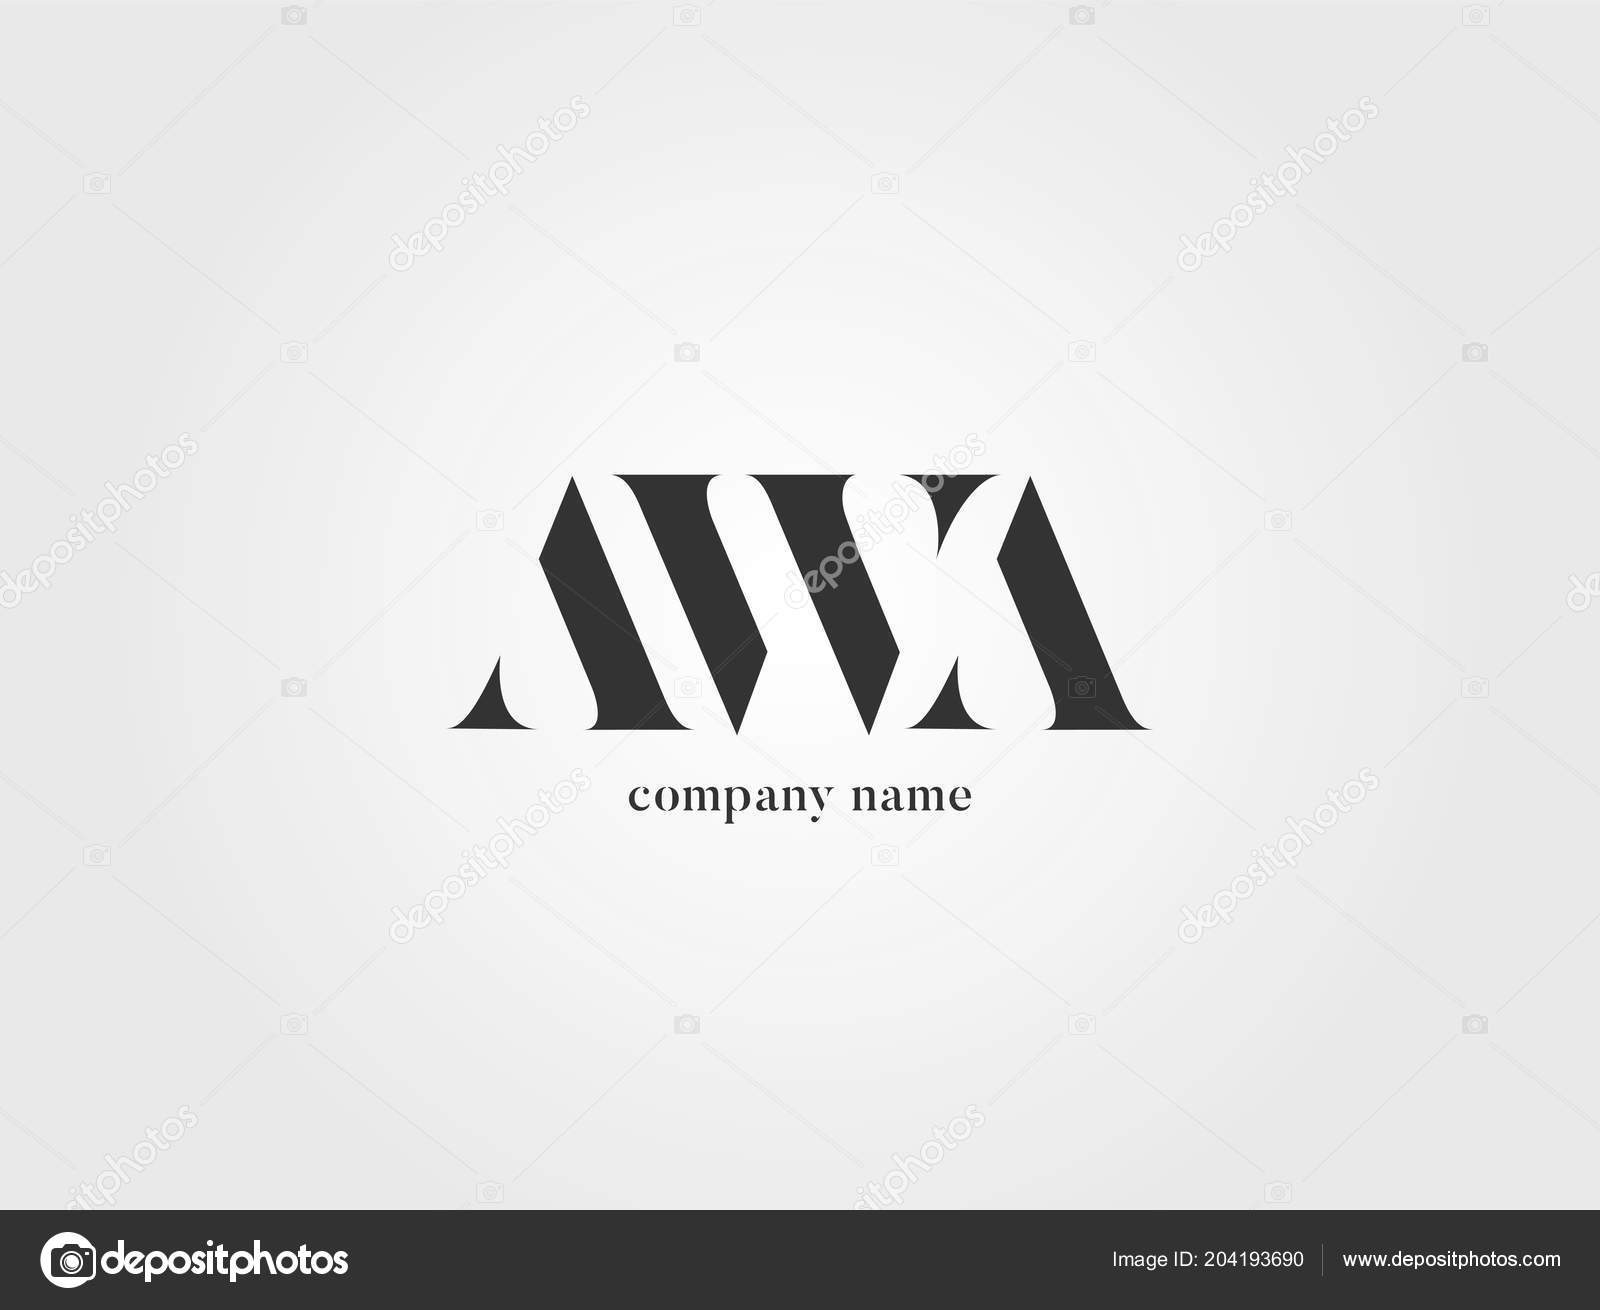 letters logo awb template business banner stock vector